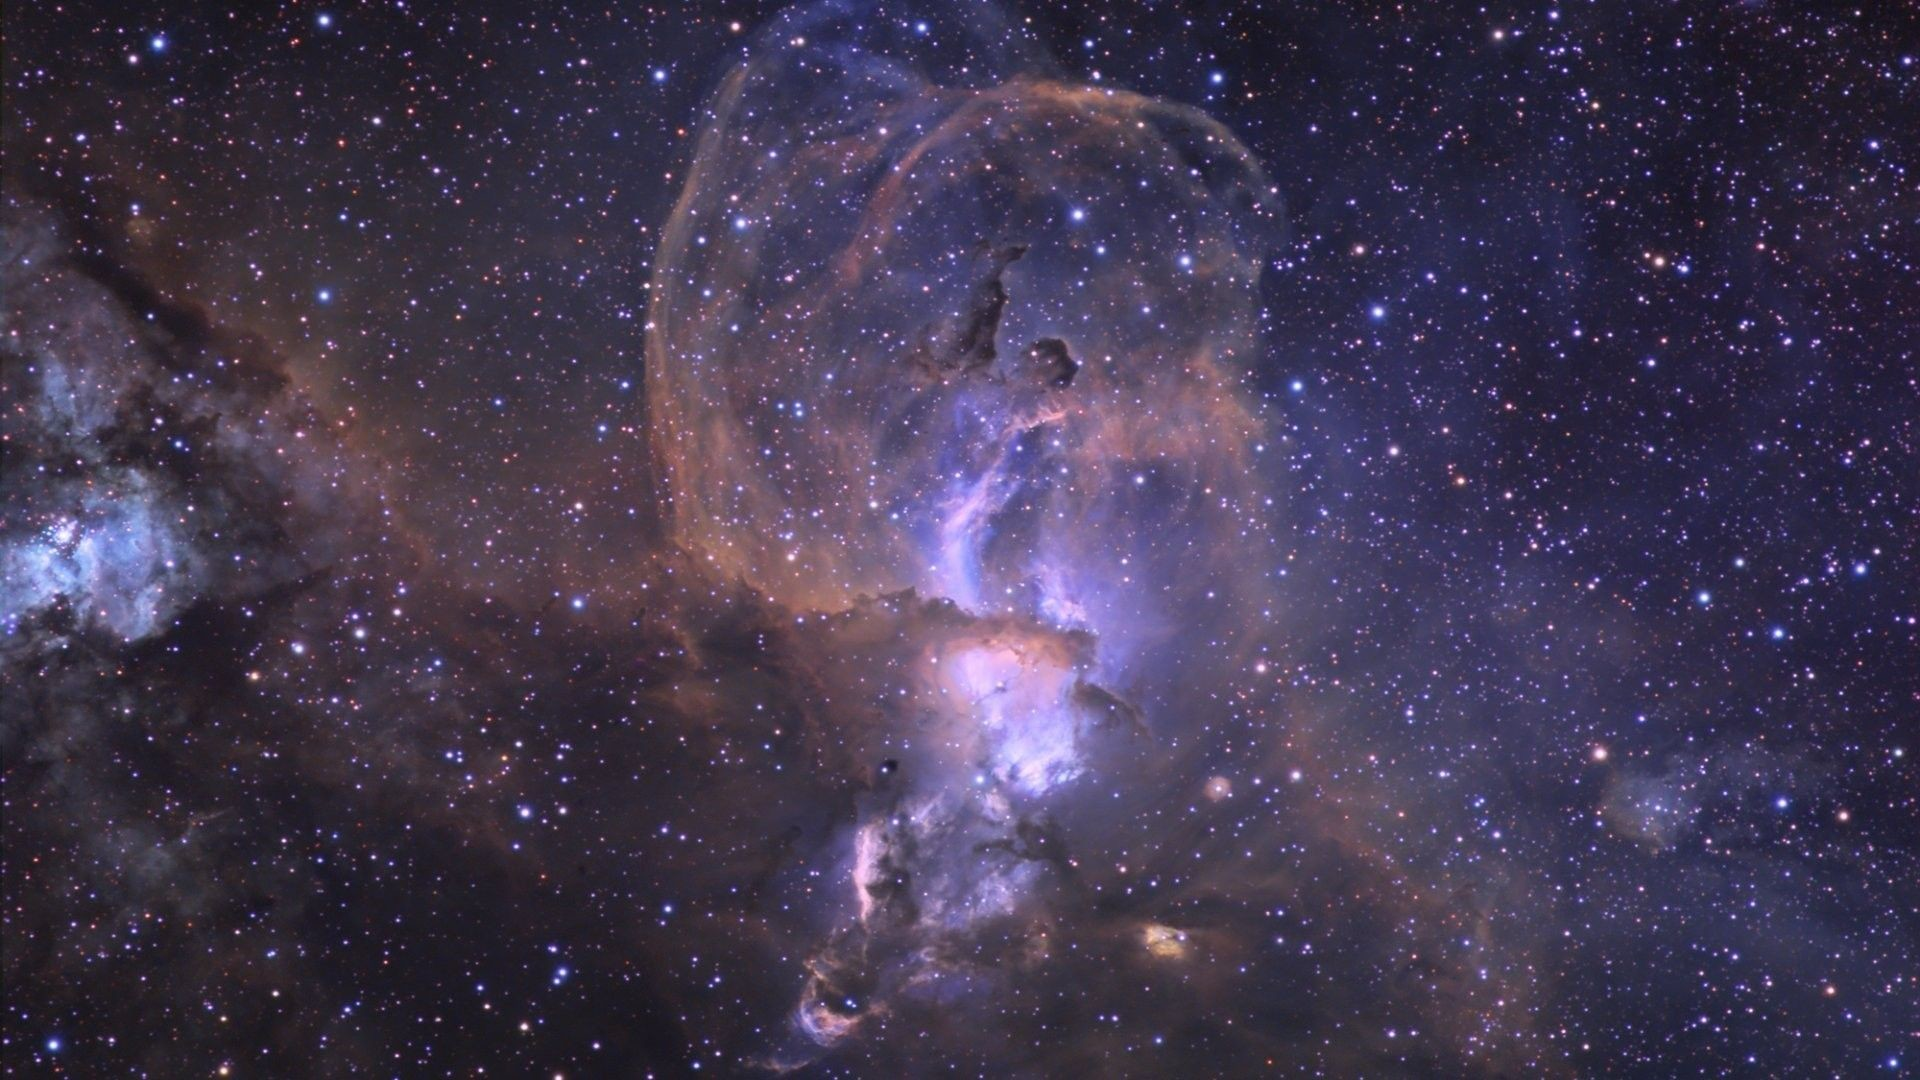 NASA Wallpaper Hubble (page 2) – Pics about space